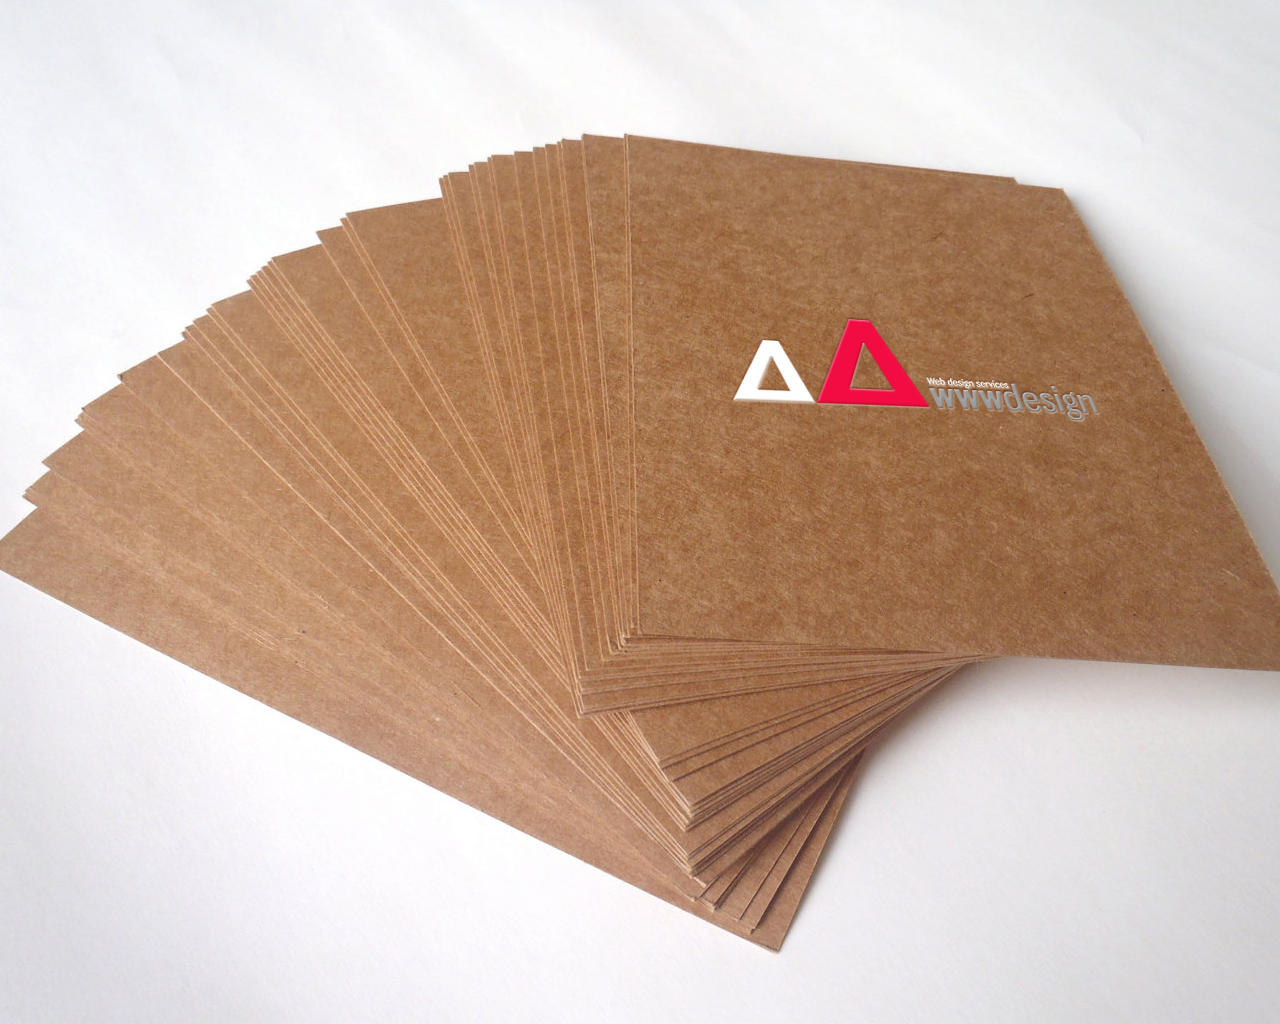 Professional business cards by armenasryan on envato studio professional business cards reheart